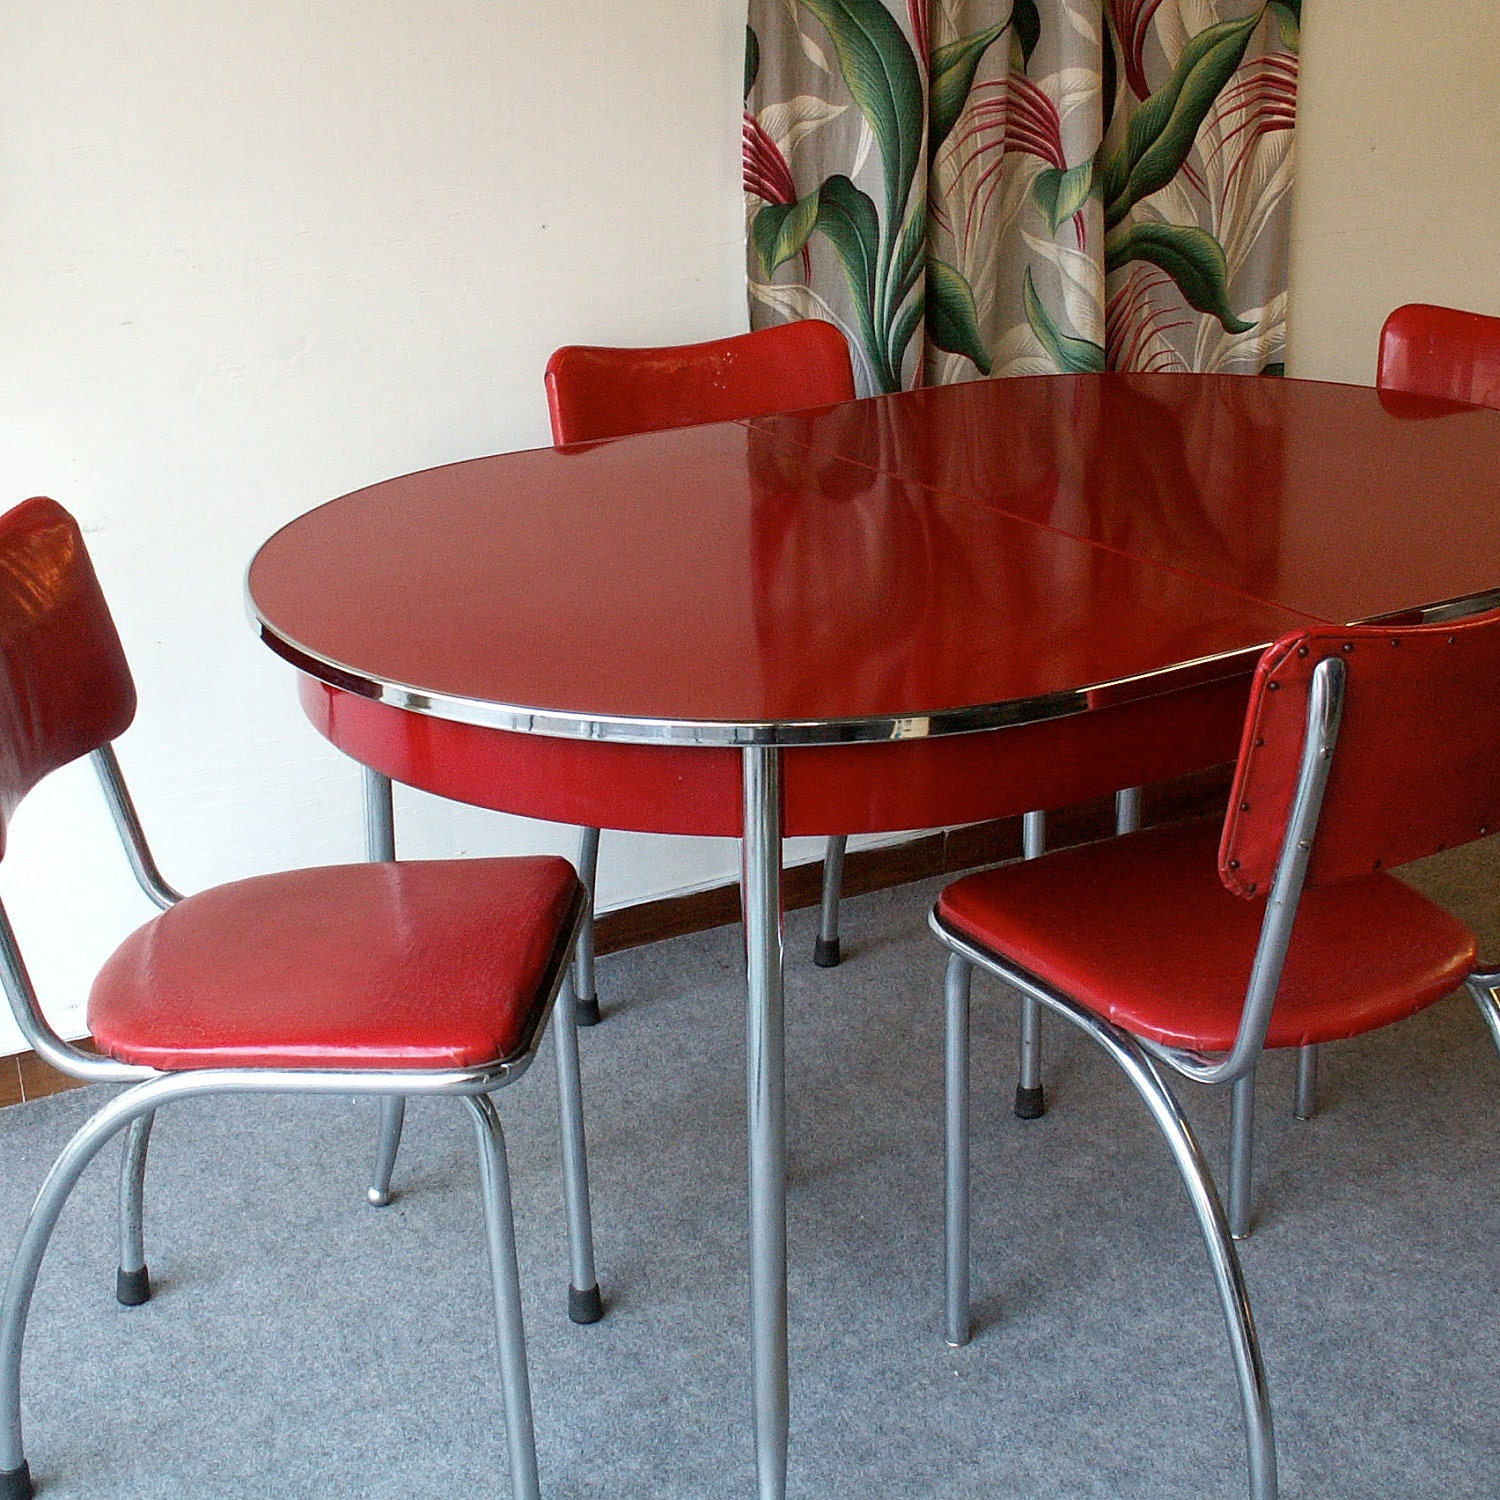 Unavailable listing on etsy for Retro kitchen table and chairs